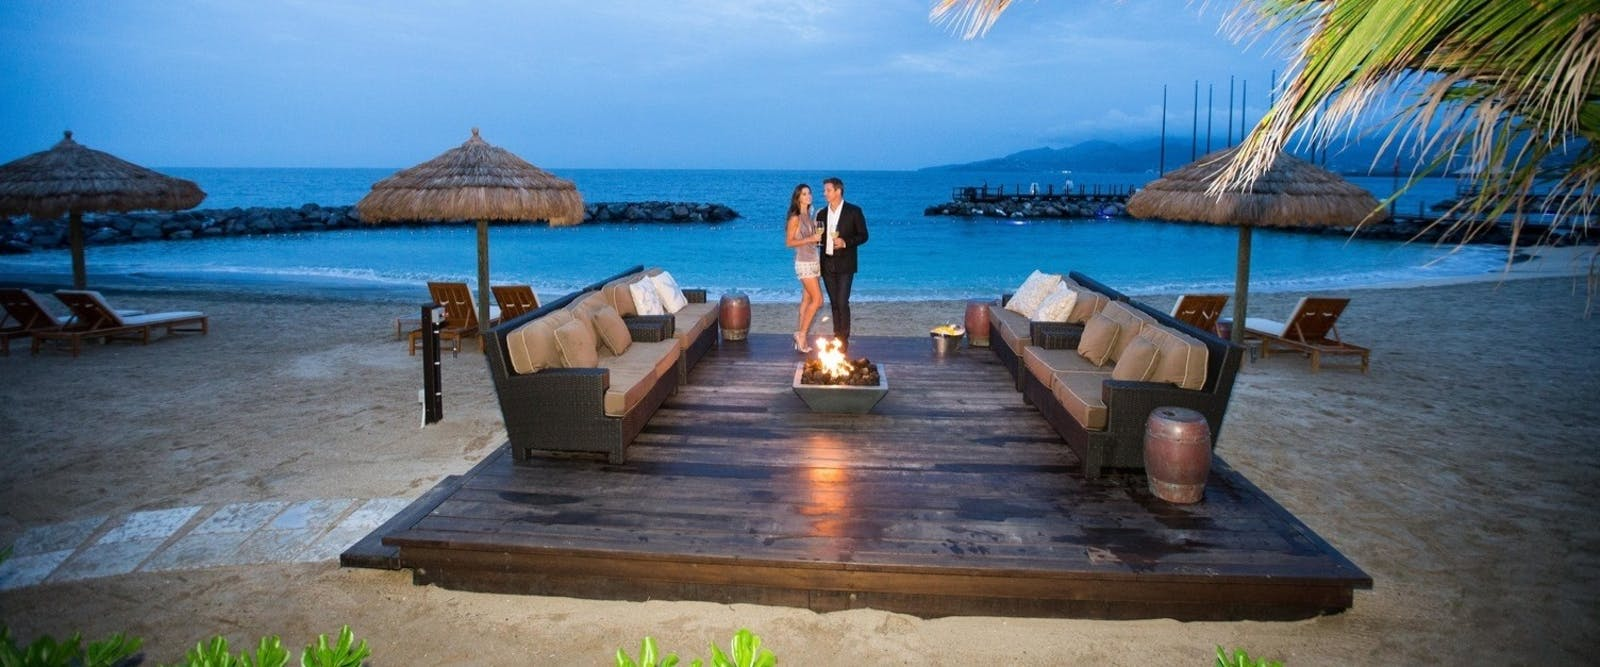 Beach Firepit at Sandals LaSource Grenada Resort & Spa, Grenada